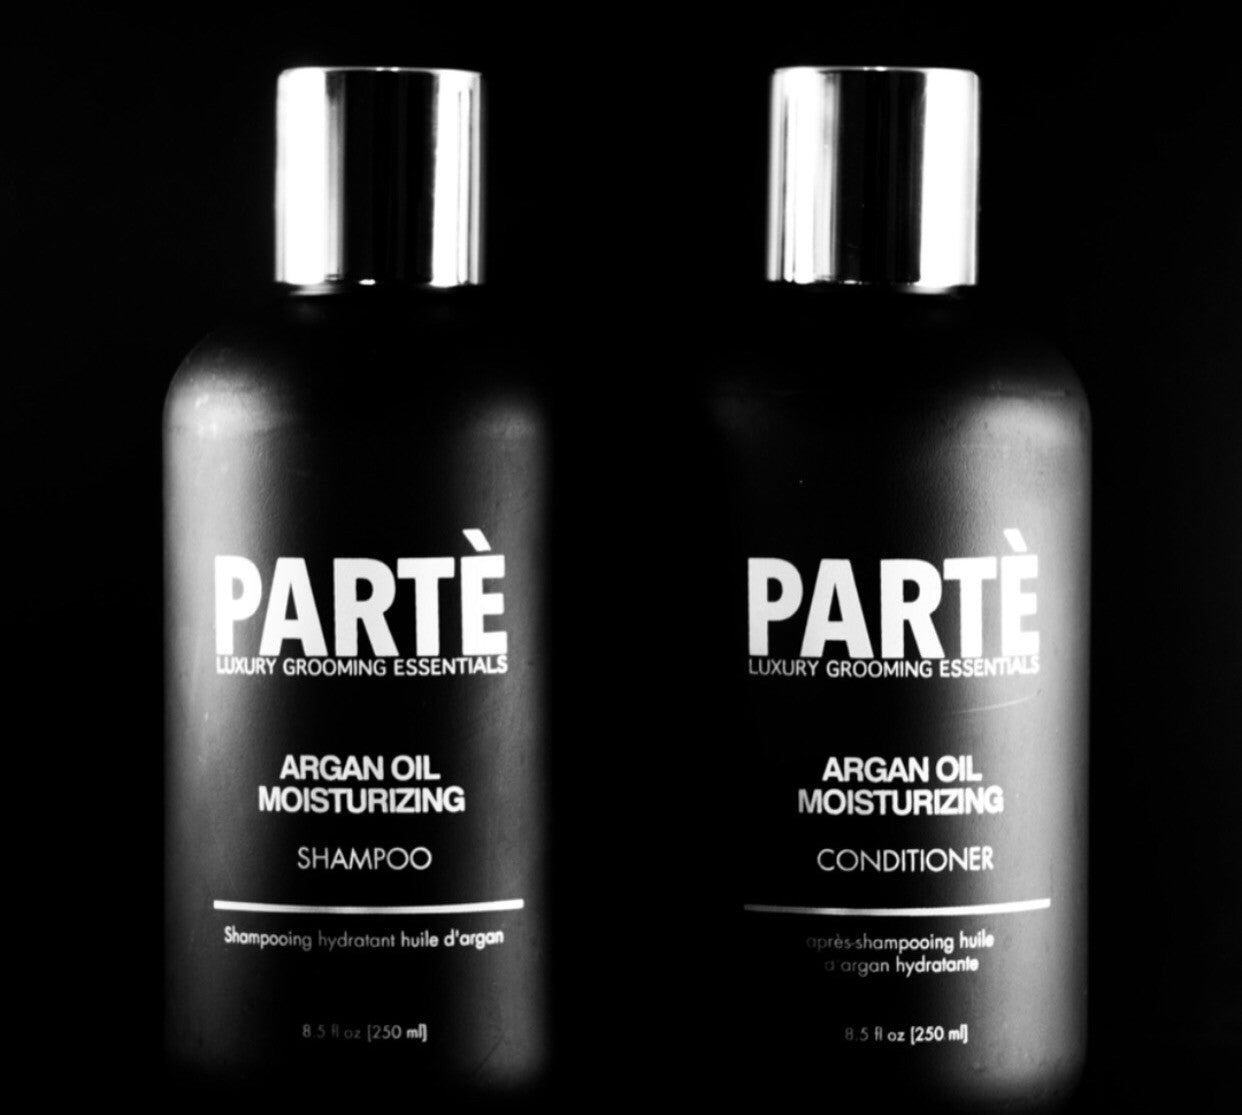 PARTÈ ARGAN OIL SHAMPOO + CONDITIONER | FREE SHIPPING IN THE US